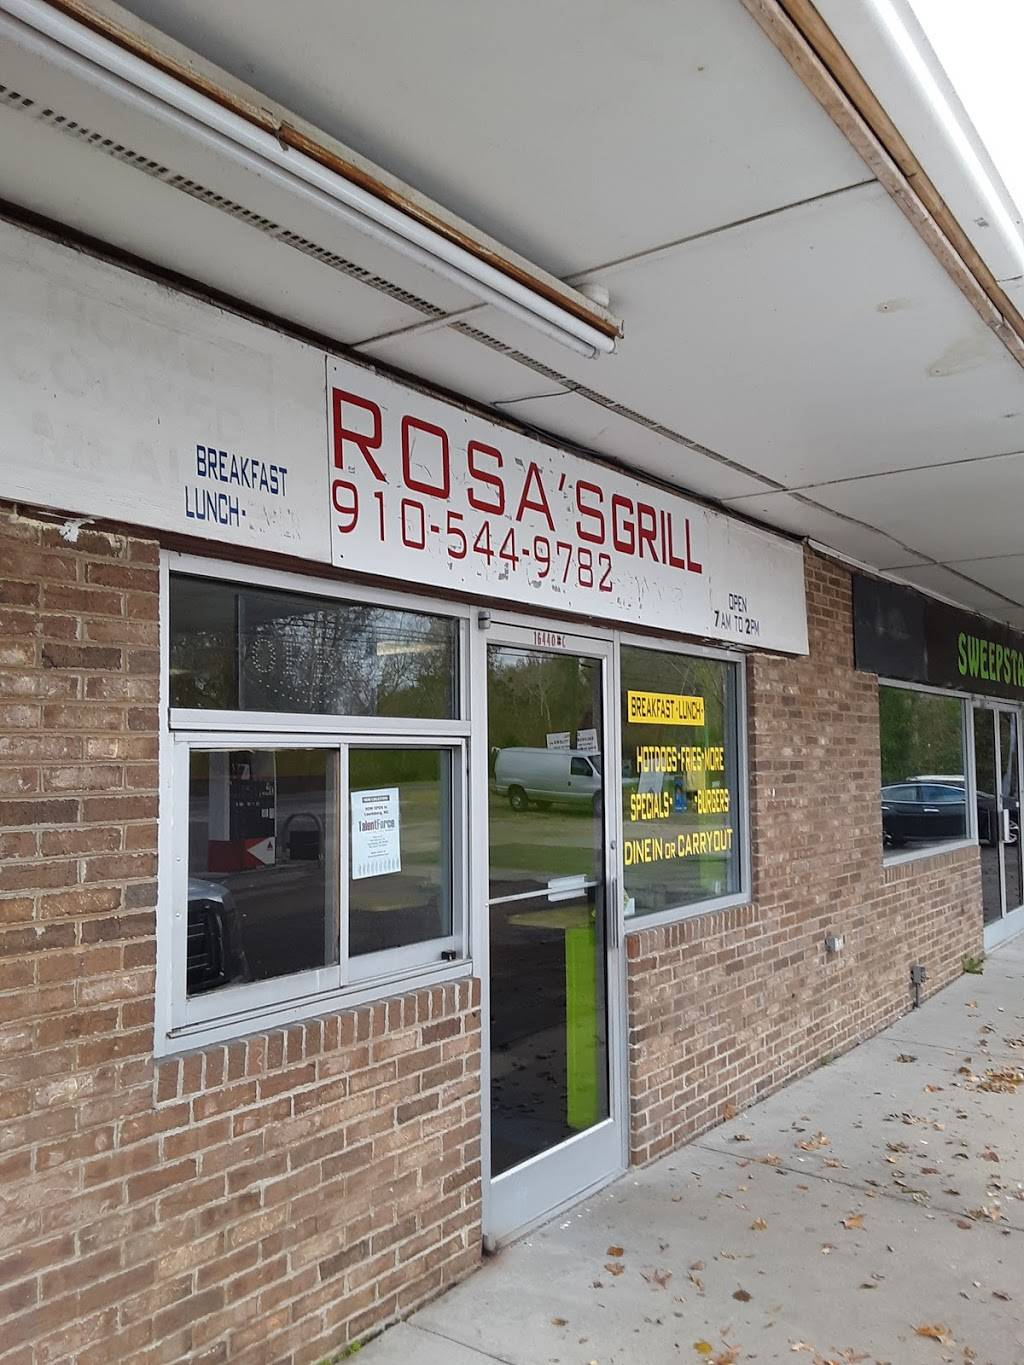 Rosas Grill   restaurant   16440 Andrew Jackson Hwy, Laurinburg, NC 28352, USA   9105449782 OR +1 910-544-9782